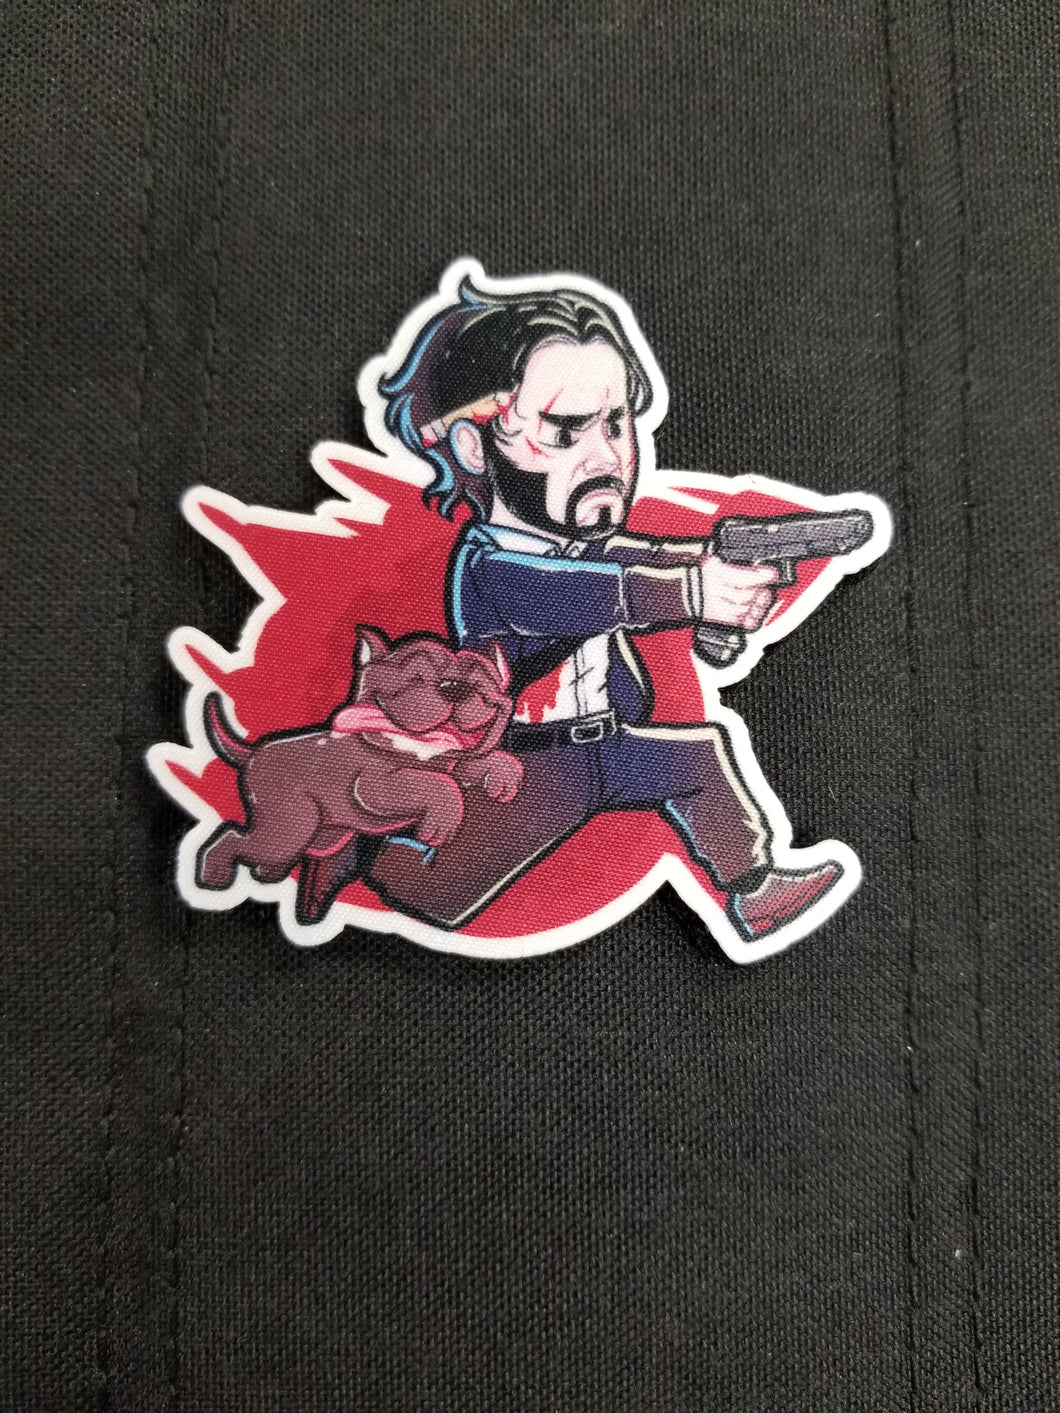 Wick and Pup Sticker